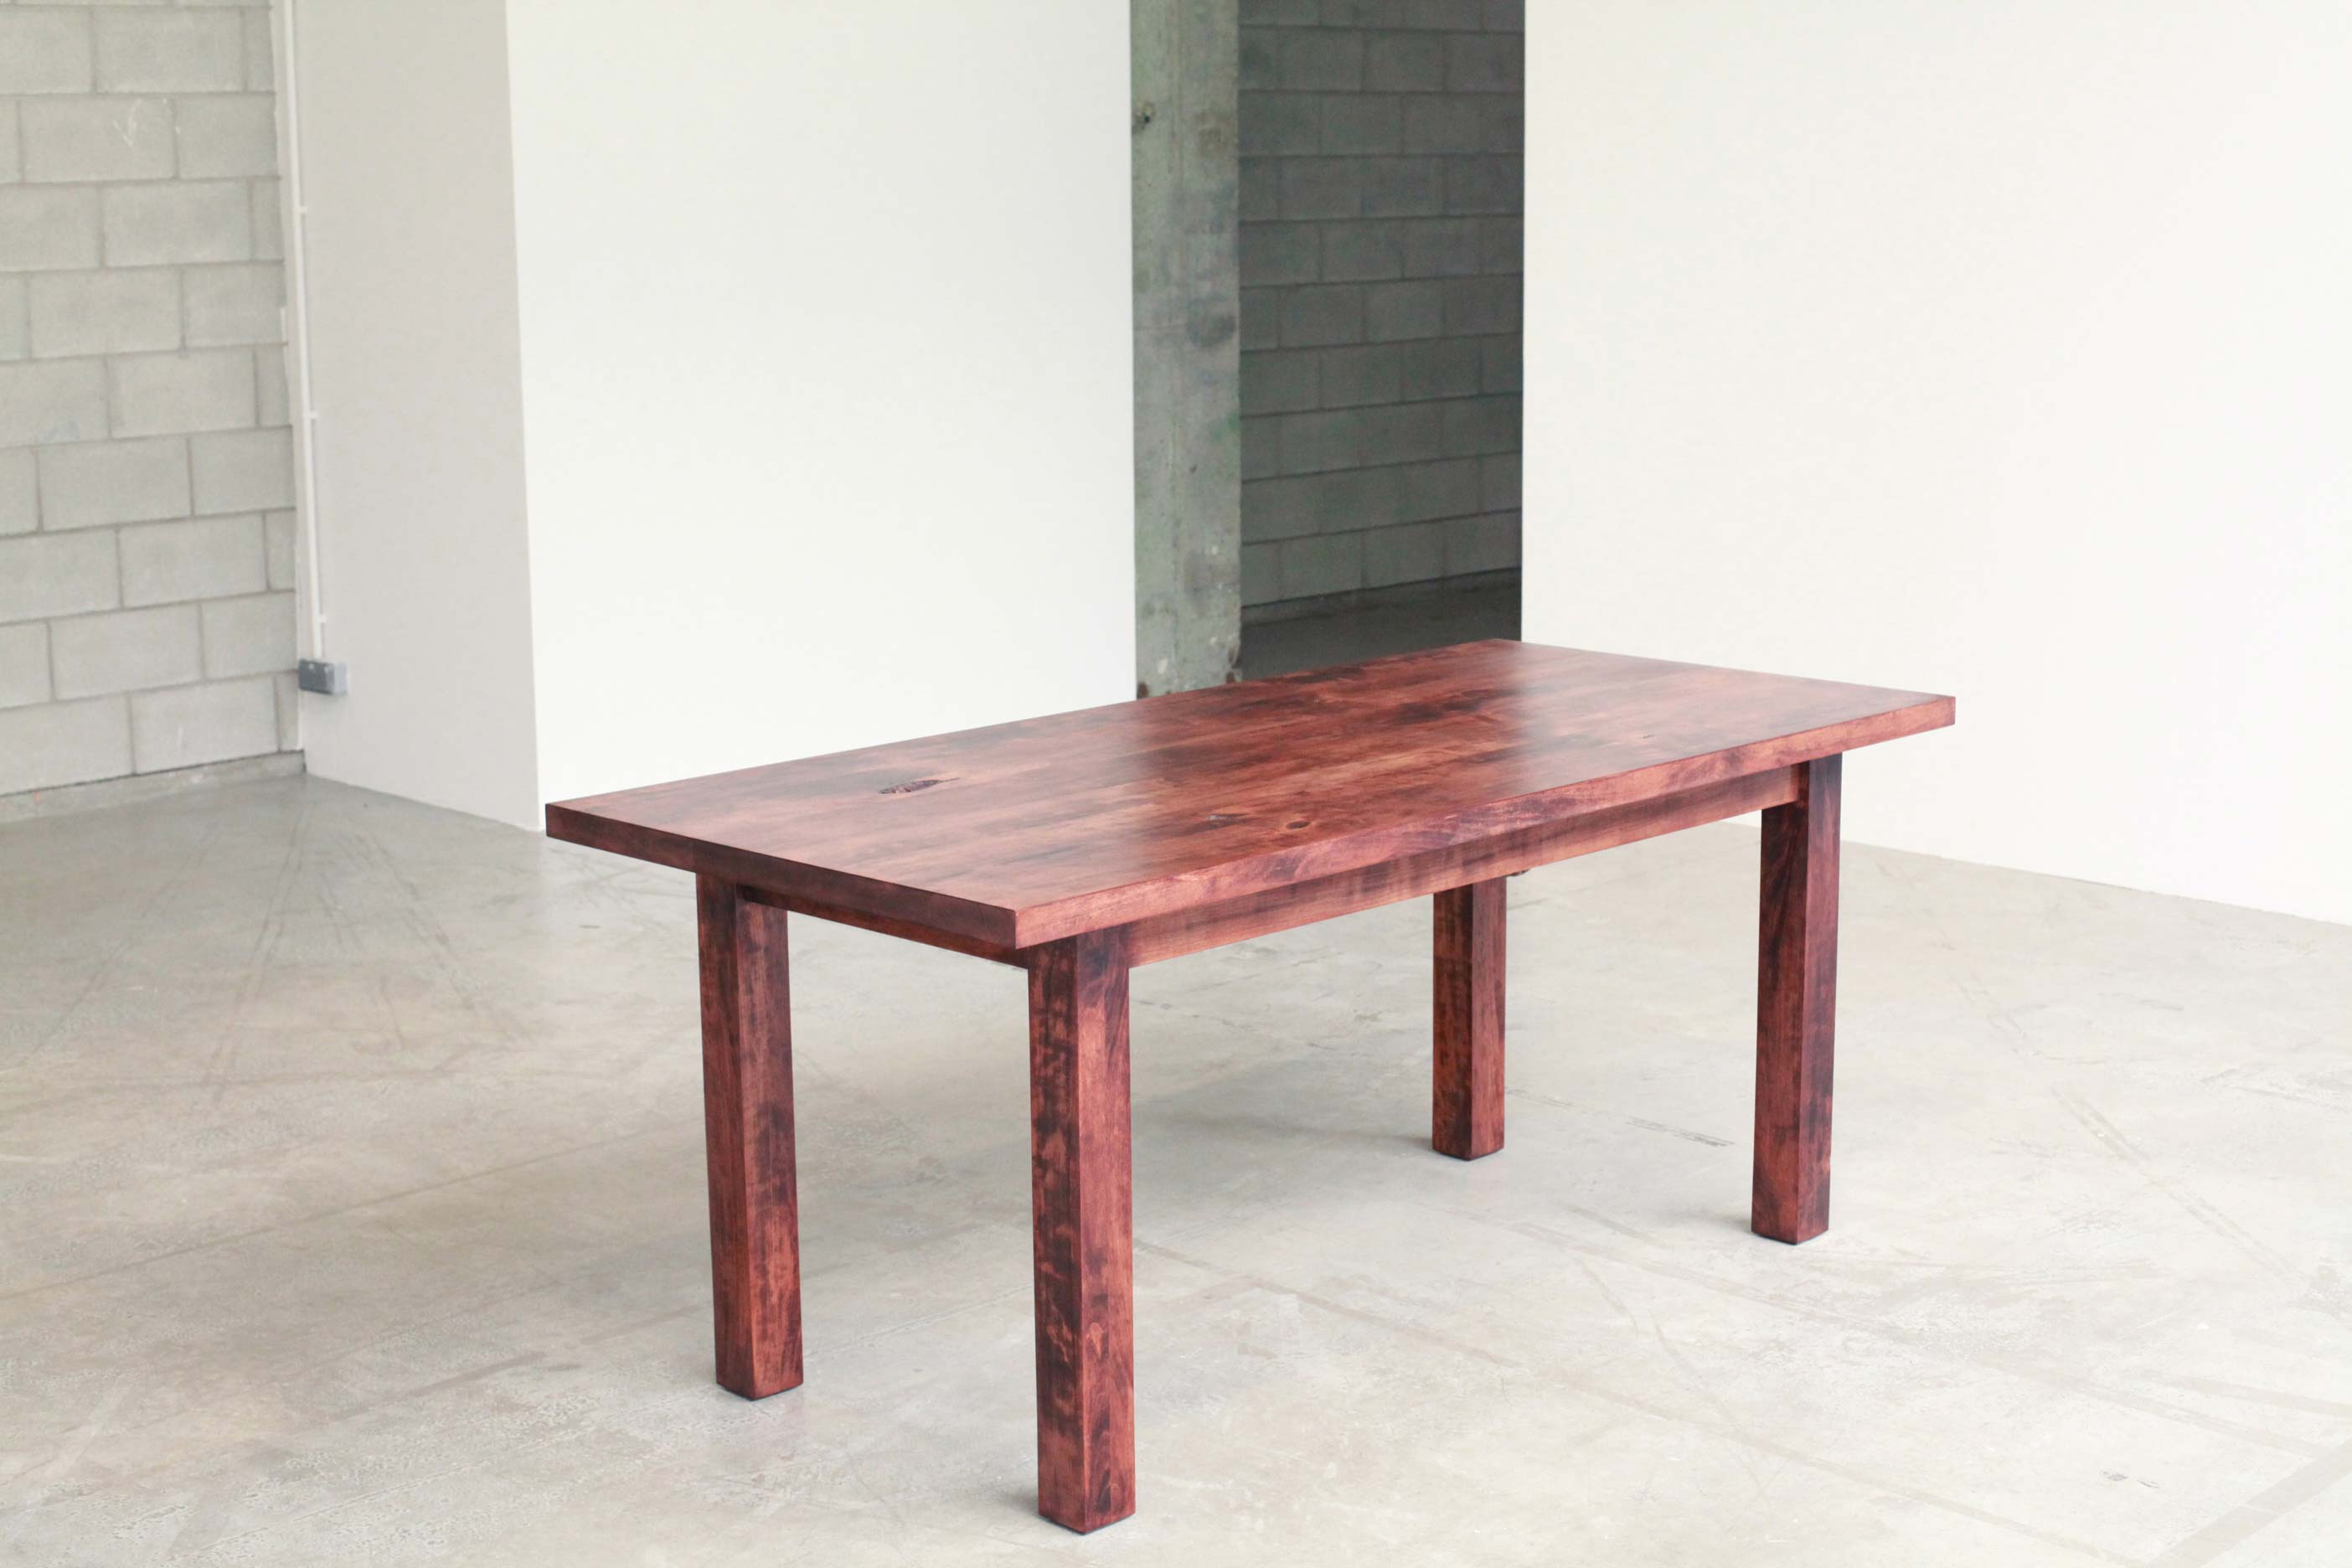 Karthik Pandian - A Cherry Table with a Walnut Brain